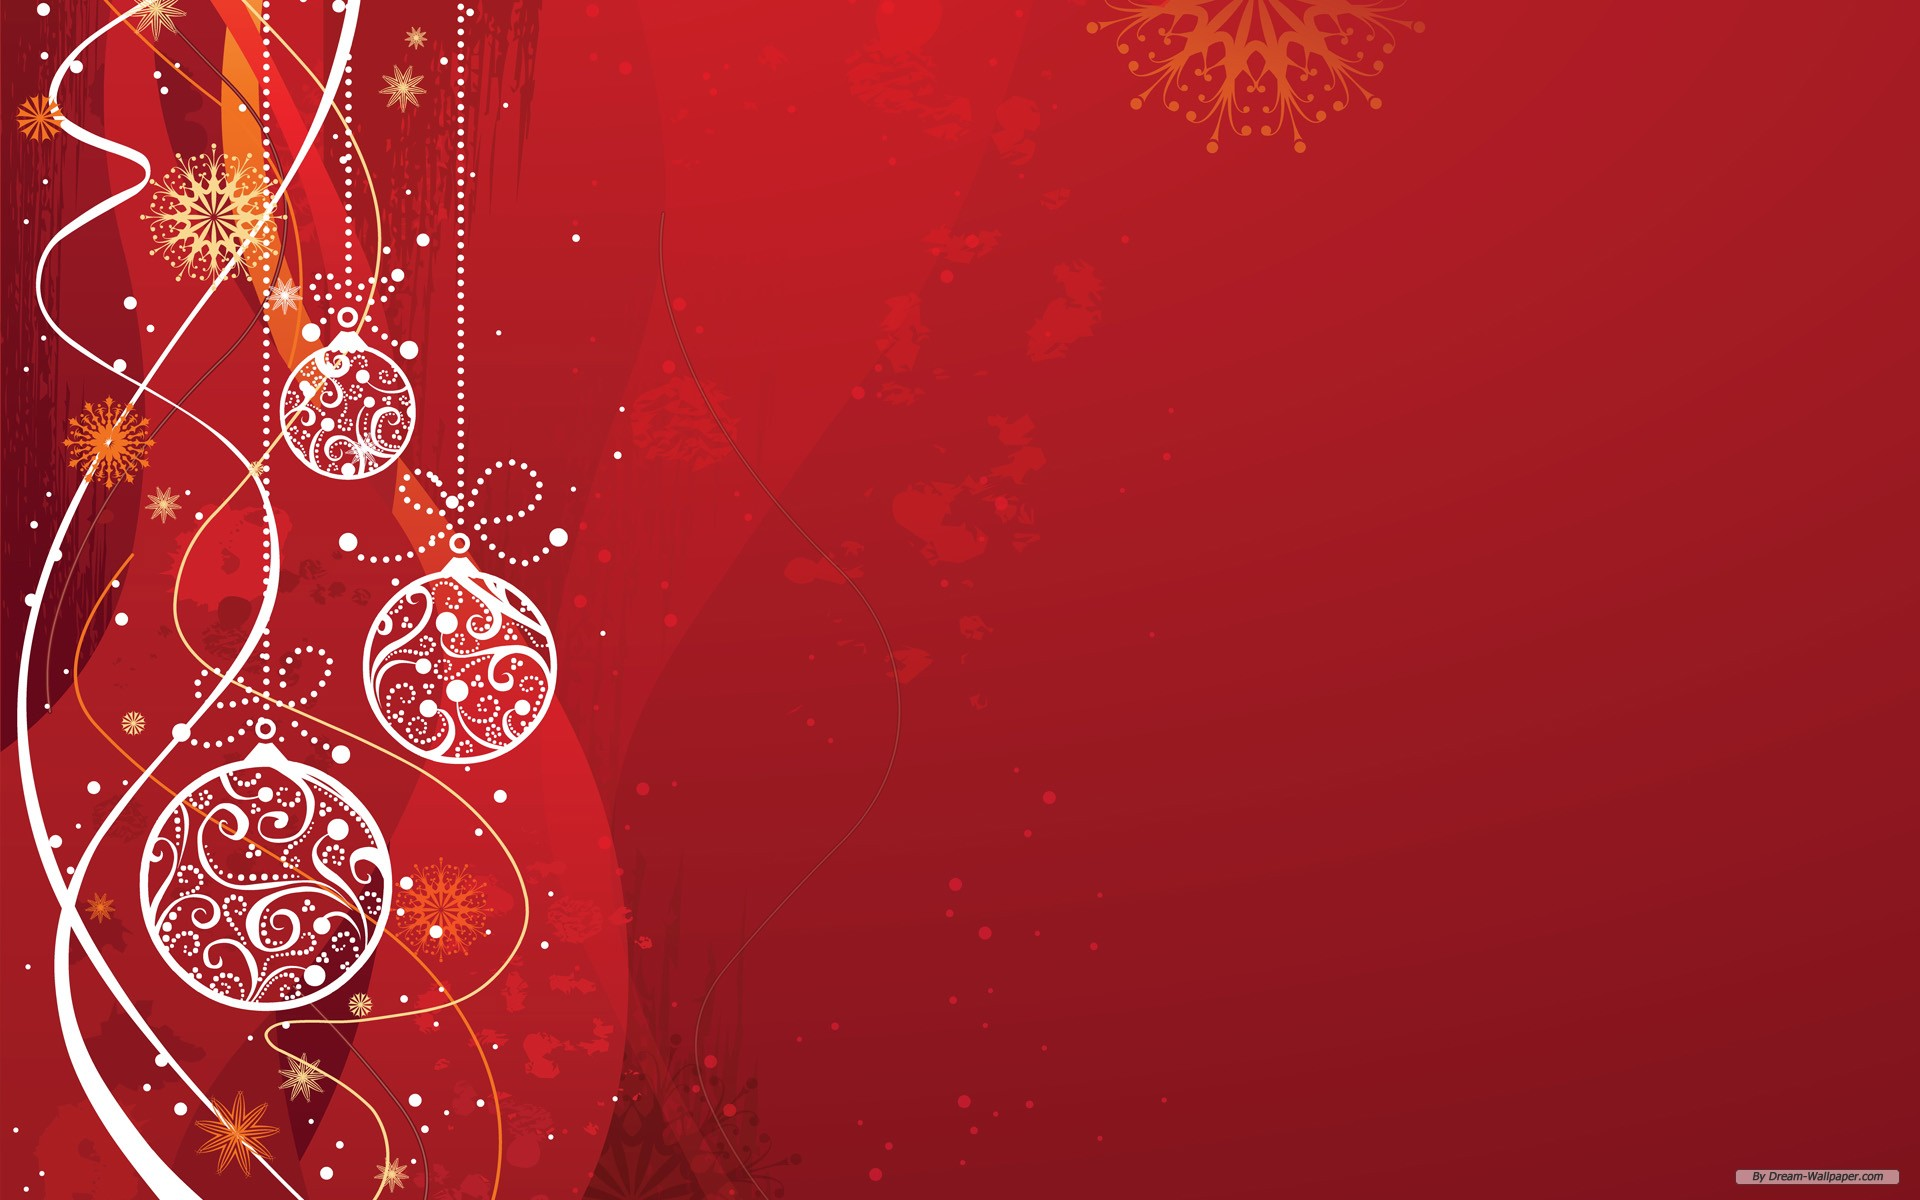 Holiday wallpaper Christmas theme 8 wallpaper 19201200 wallpaper 1920x1200